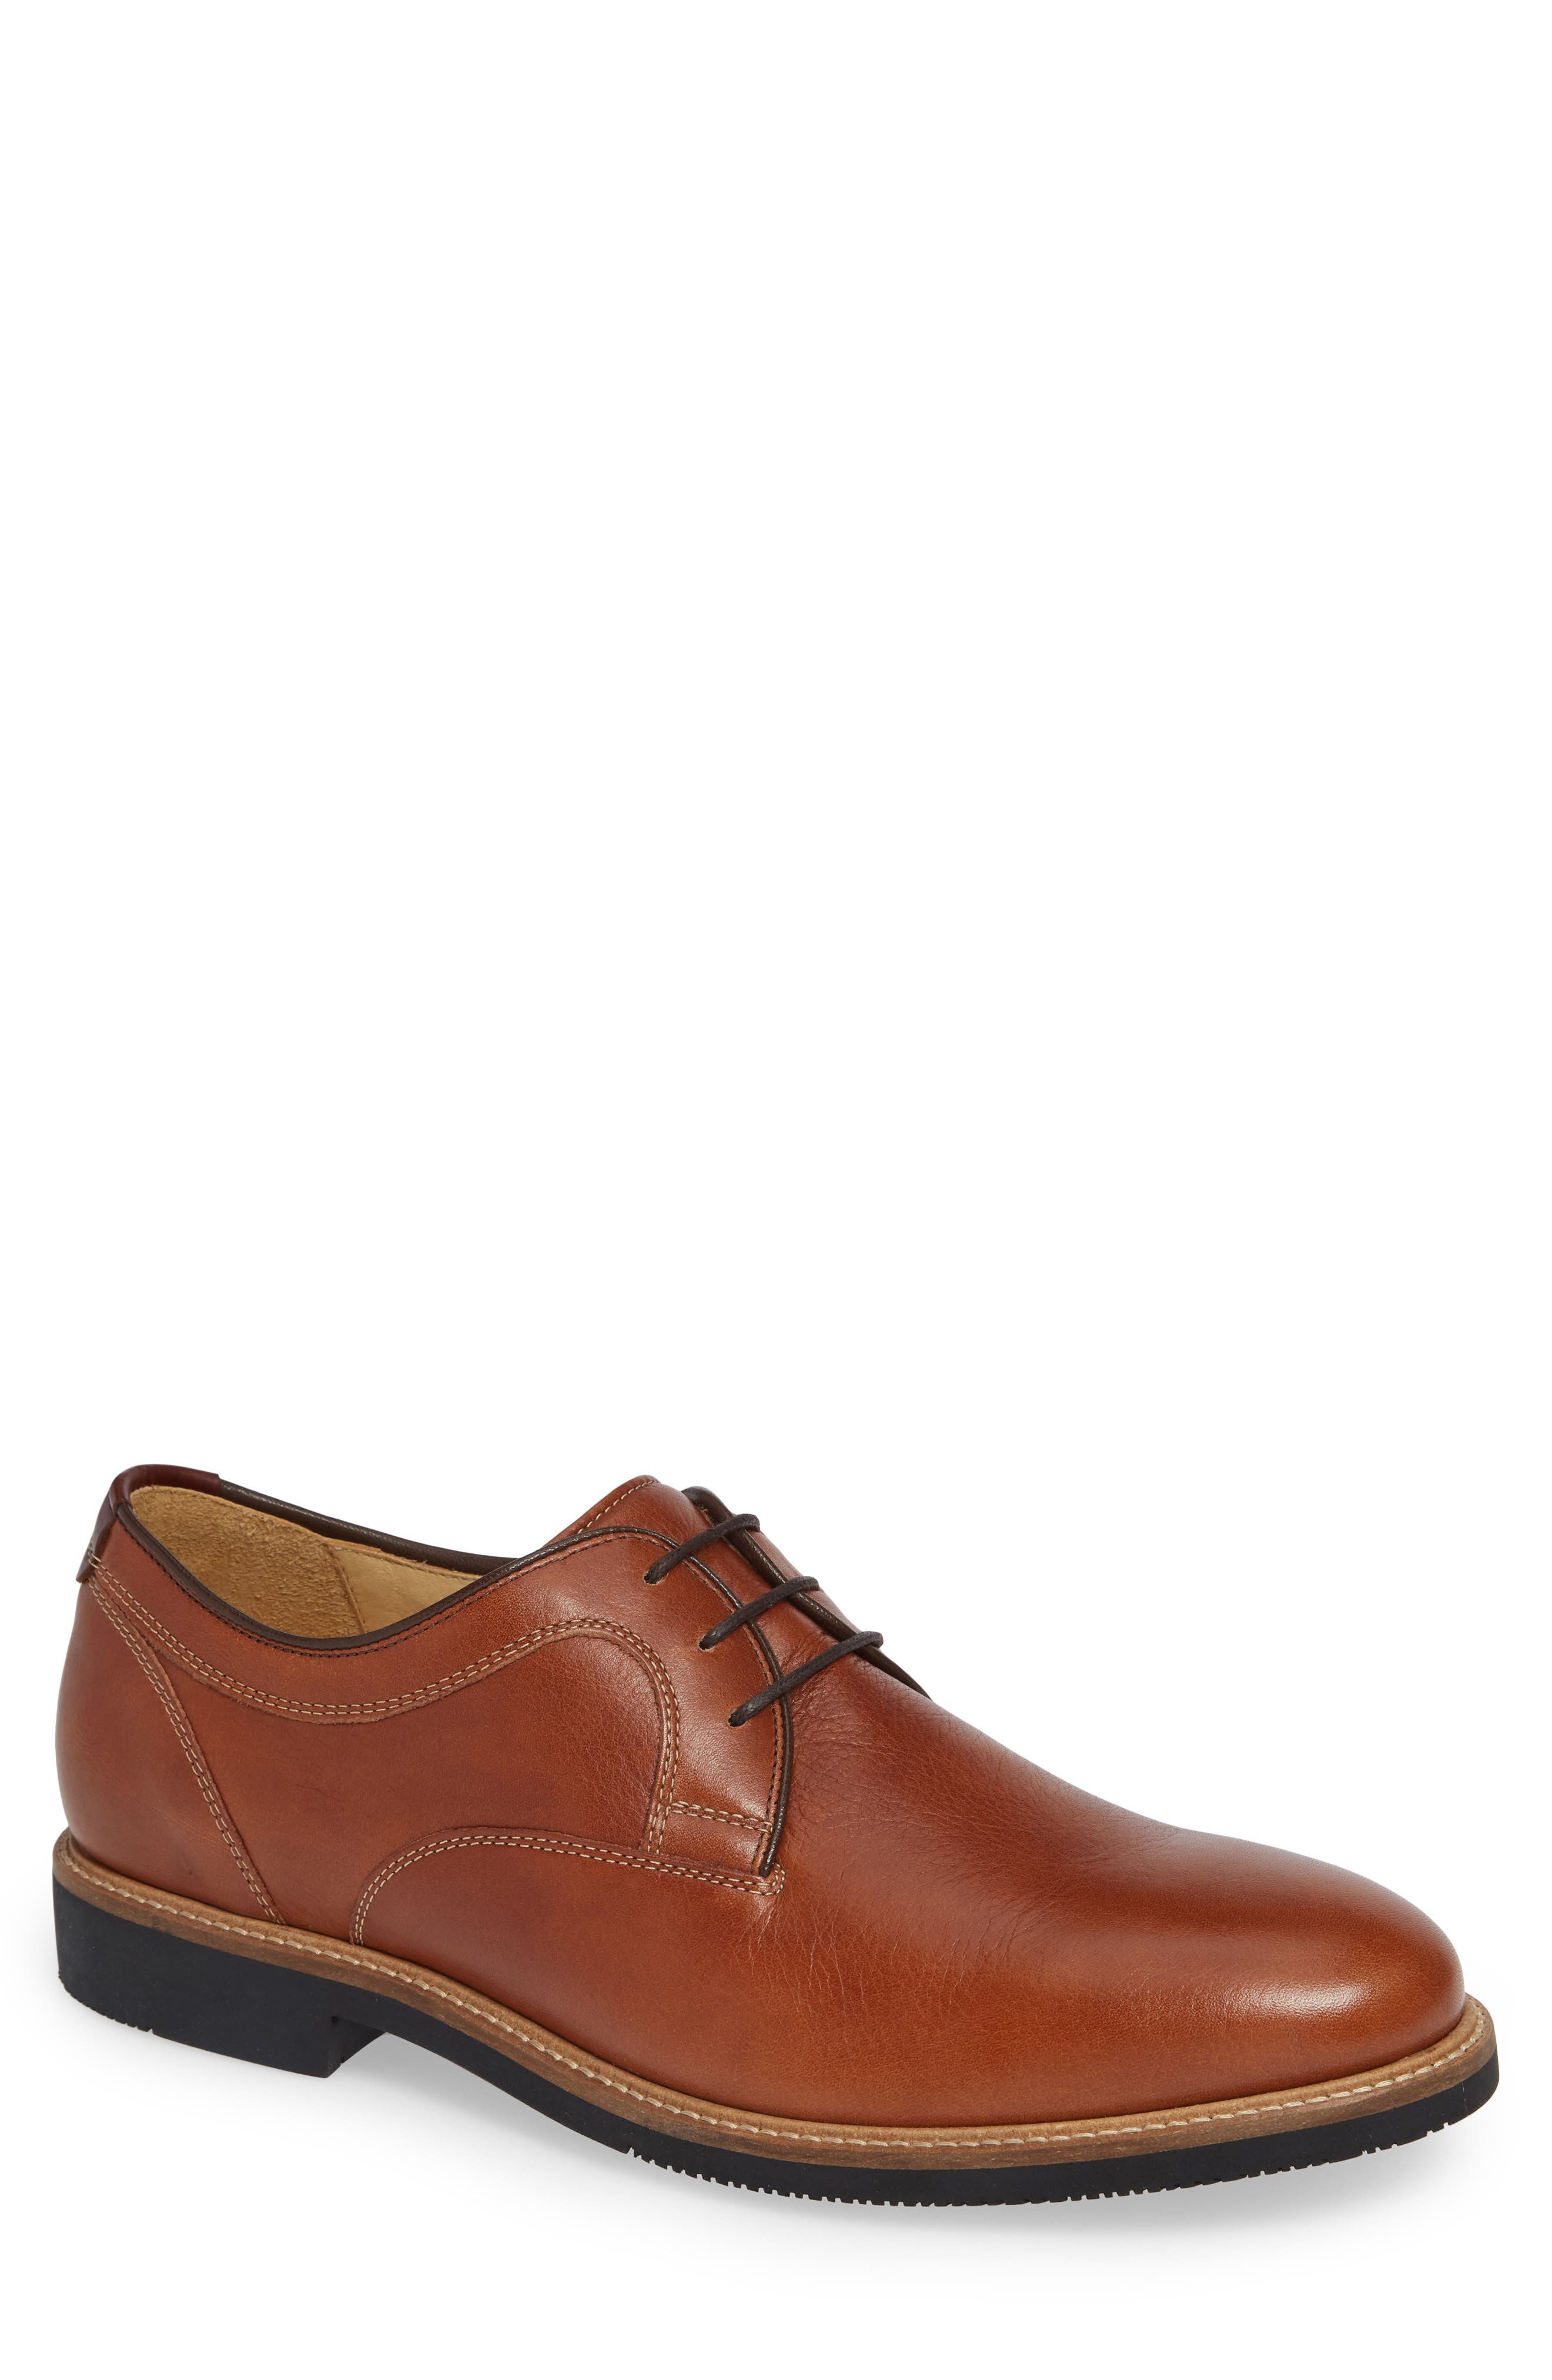 Barlow Plain Toe Derby,                         Main,                         color, DARK TAN LEATHER